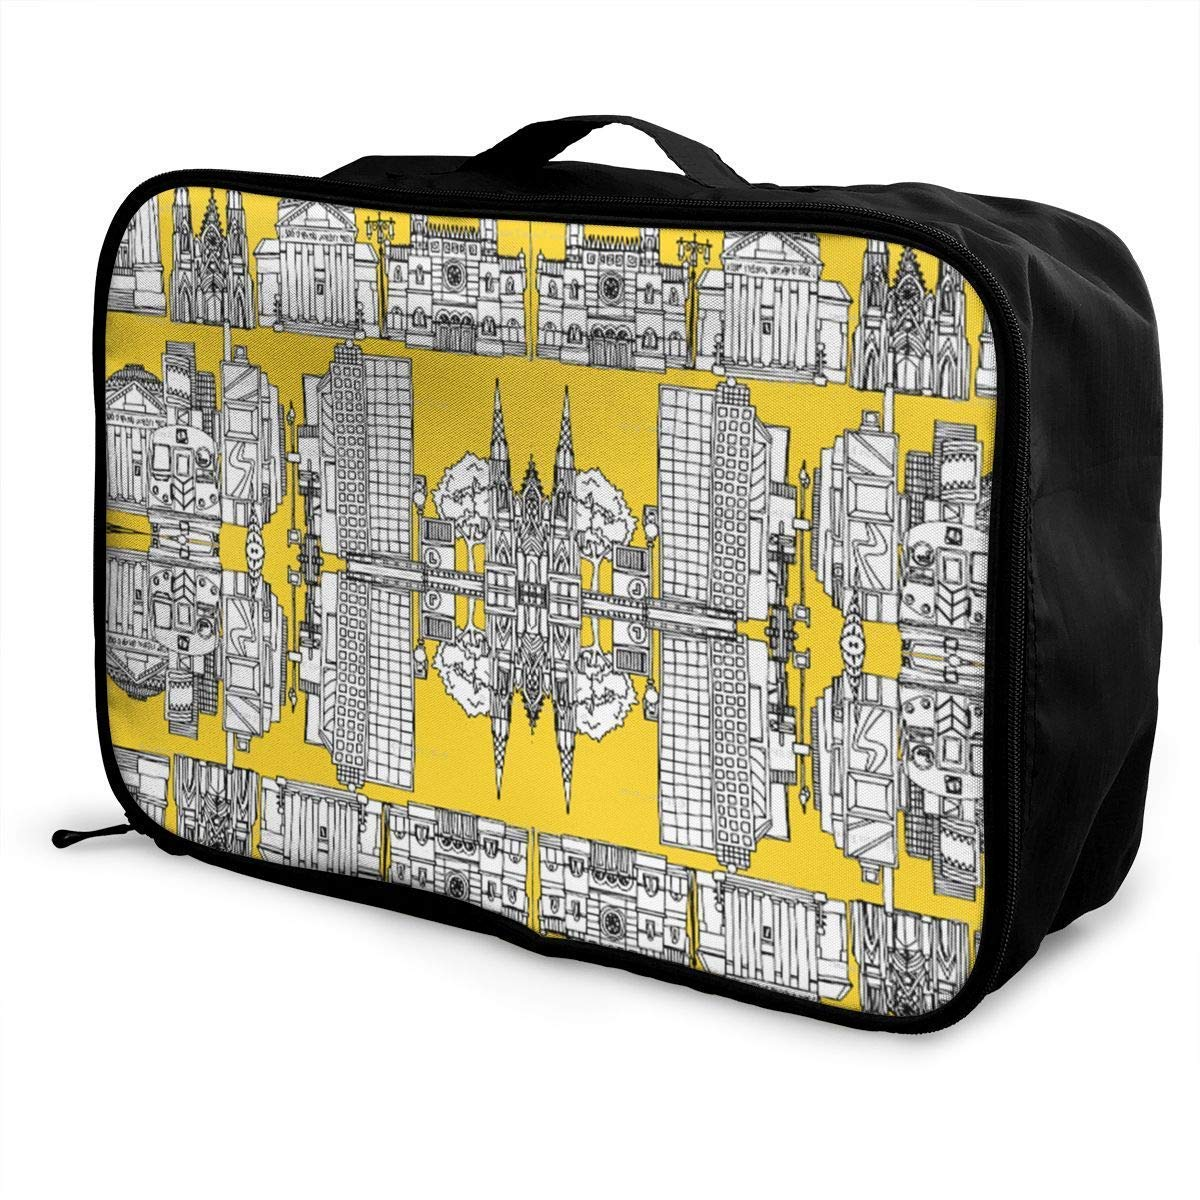 Portable Luggage Duffel Bag New York Yellow Travel Bags Carry-on in Trolley Handle JTRVW Luggage Bags for Travel